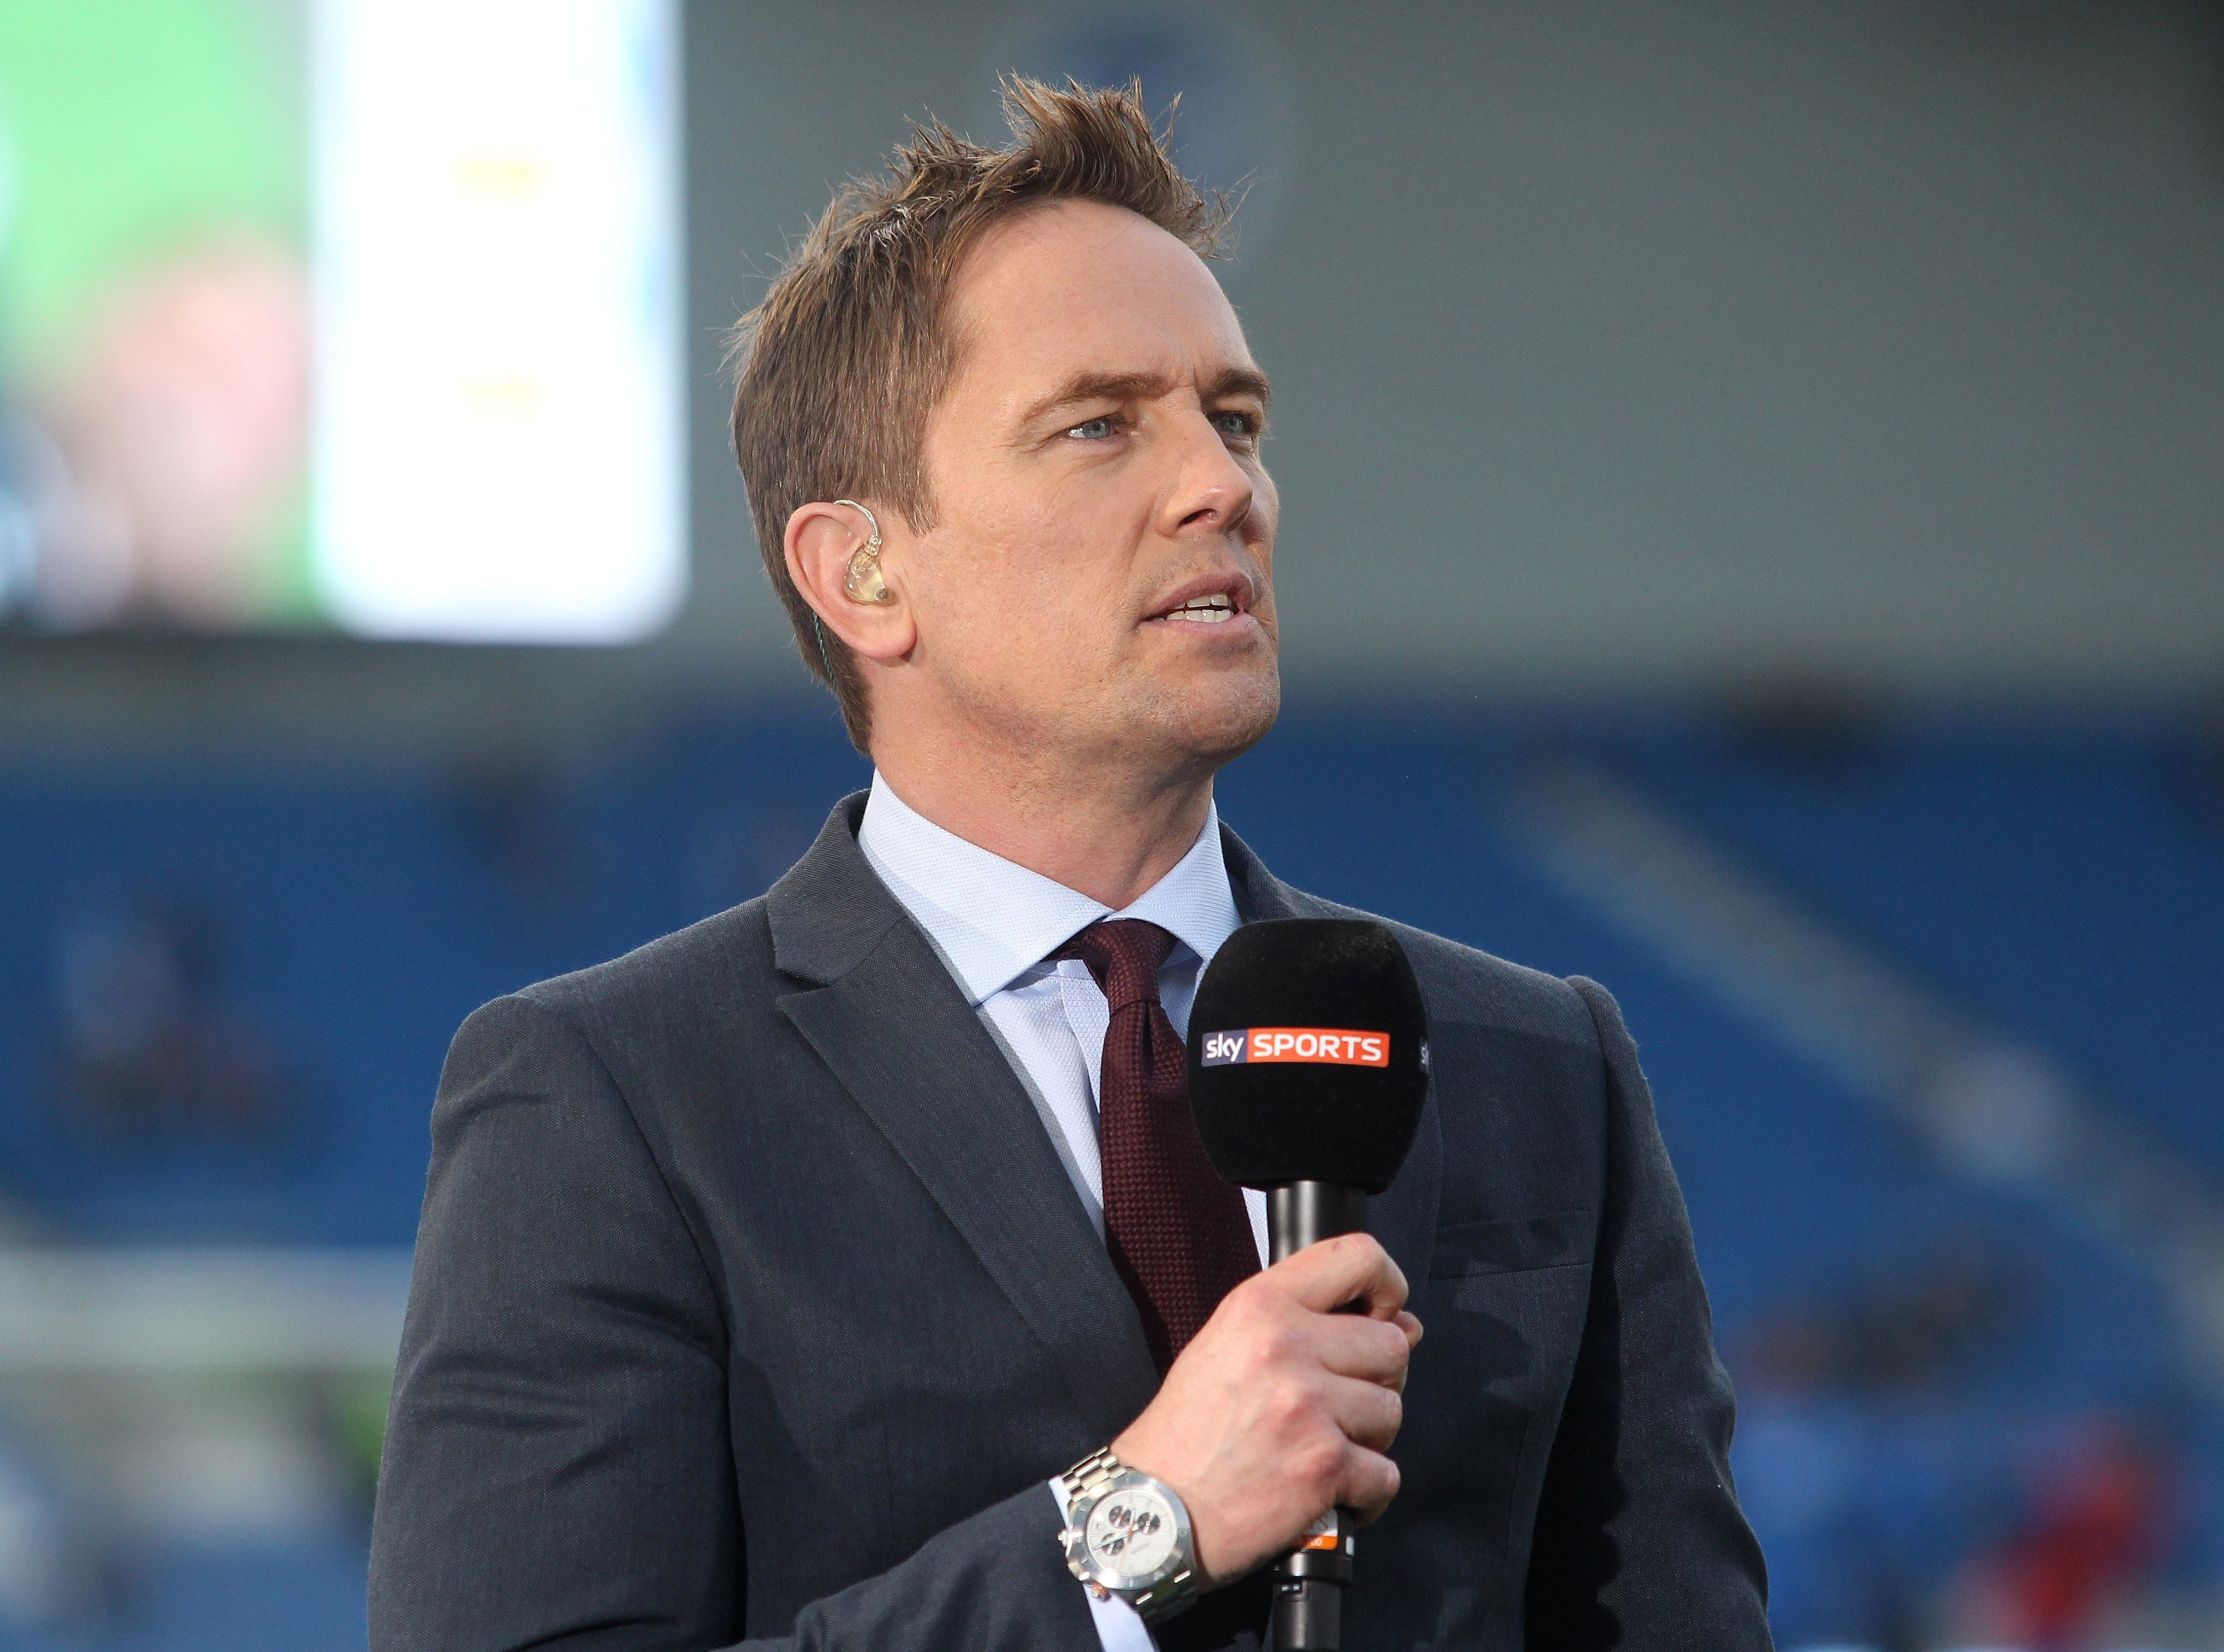 Simon Thomas Quits Sky Sports Job To Care For Eight-Year-Old Son, Following Wife's